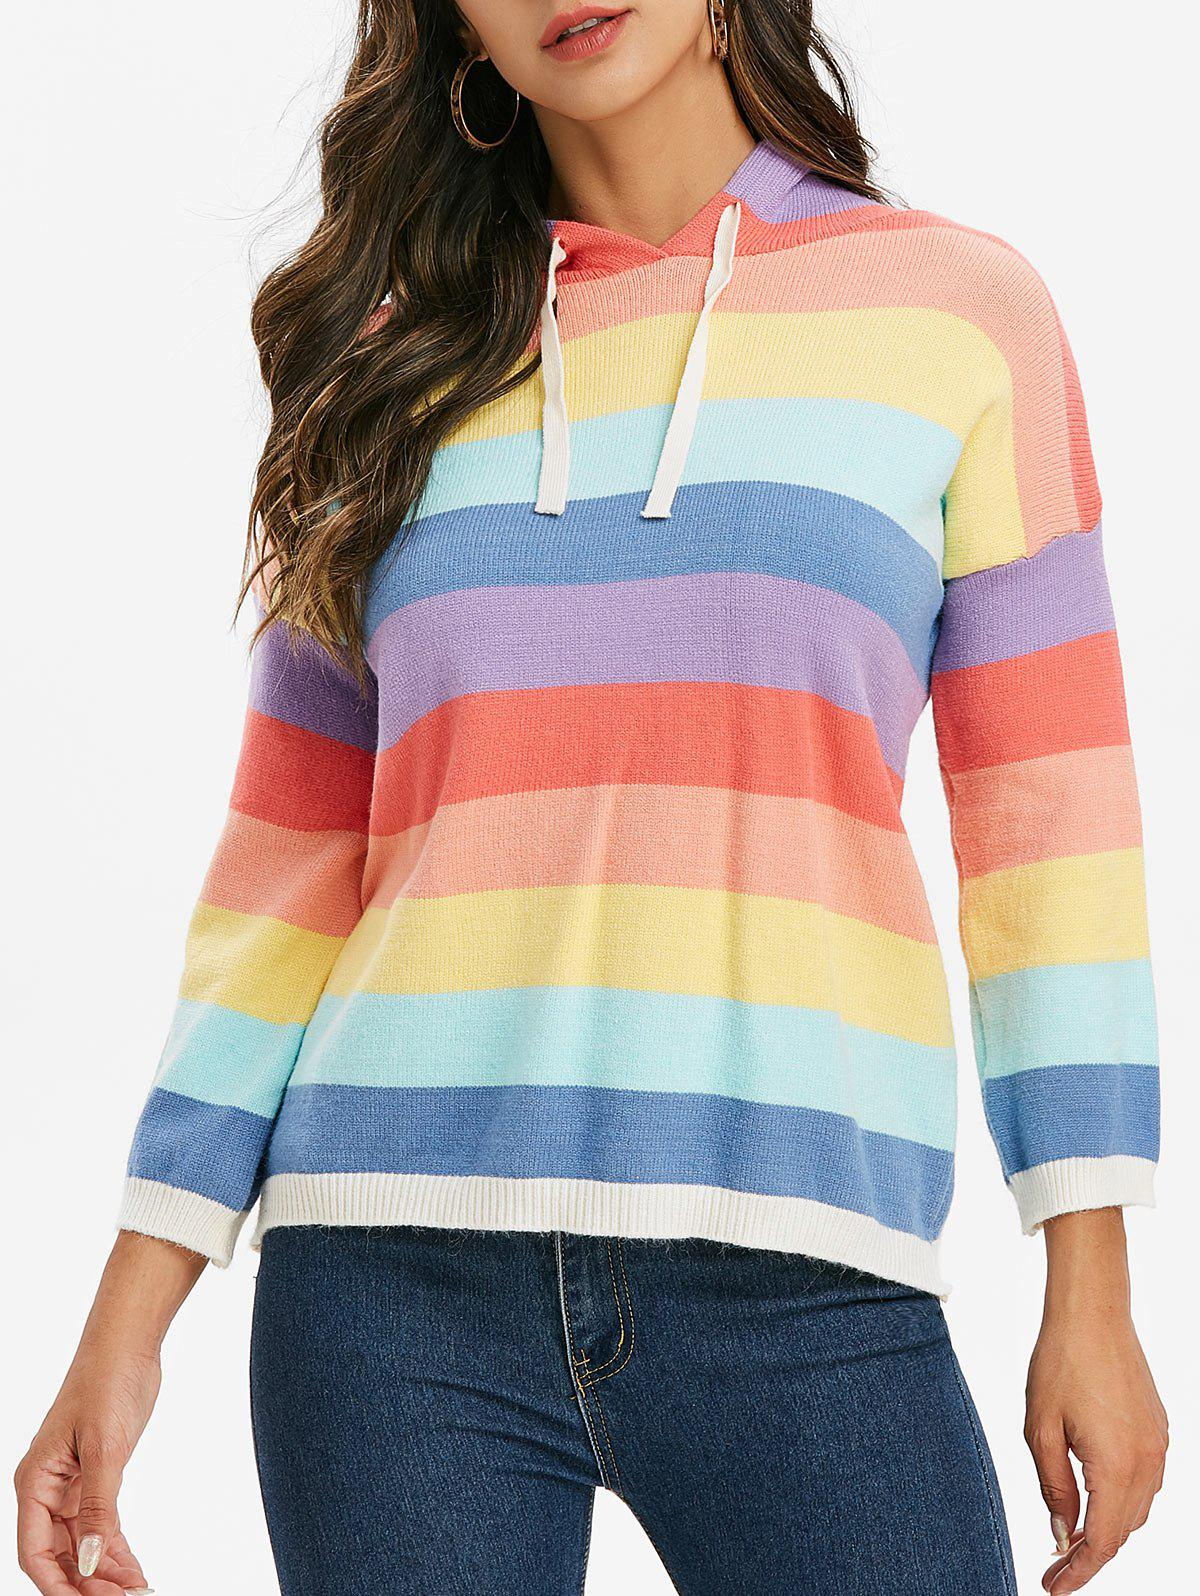 Hooded Rainbow Striped Sweater - multicolor ONE SIZE